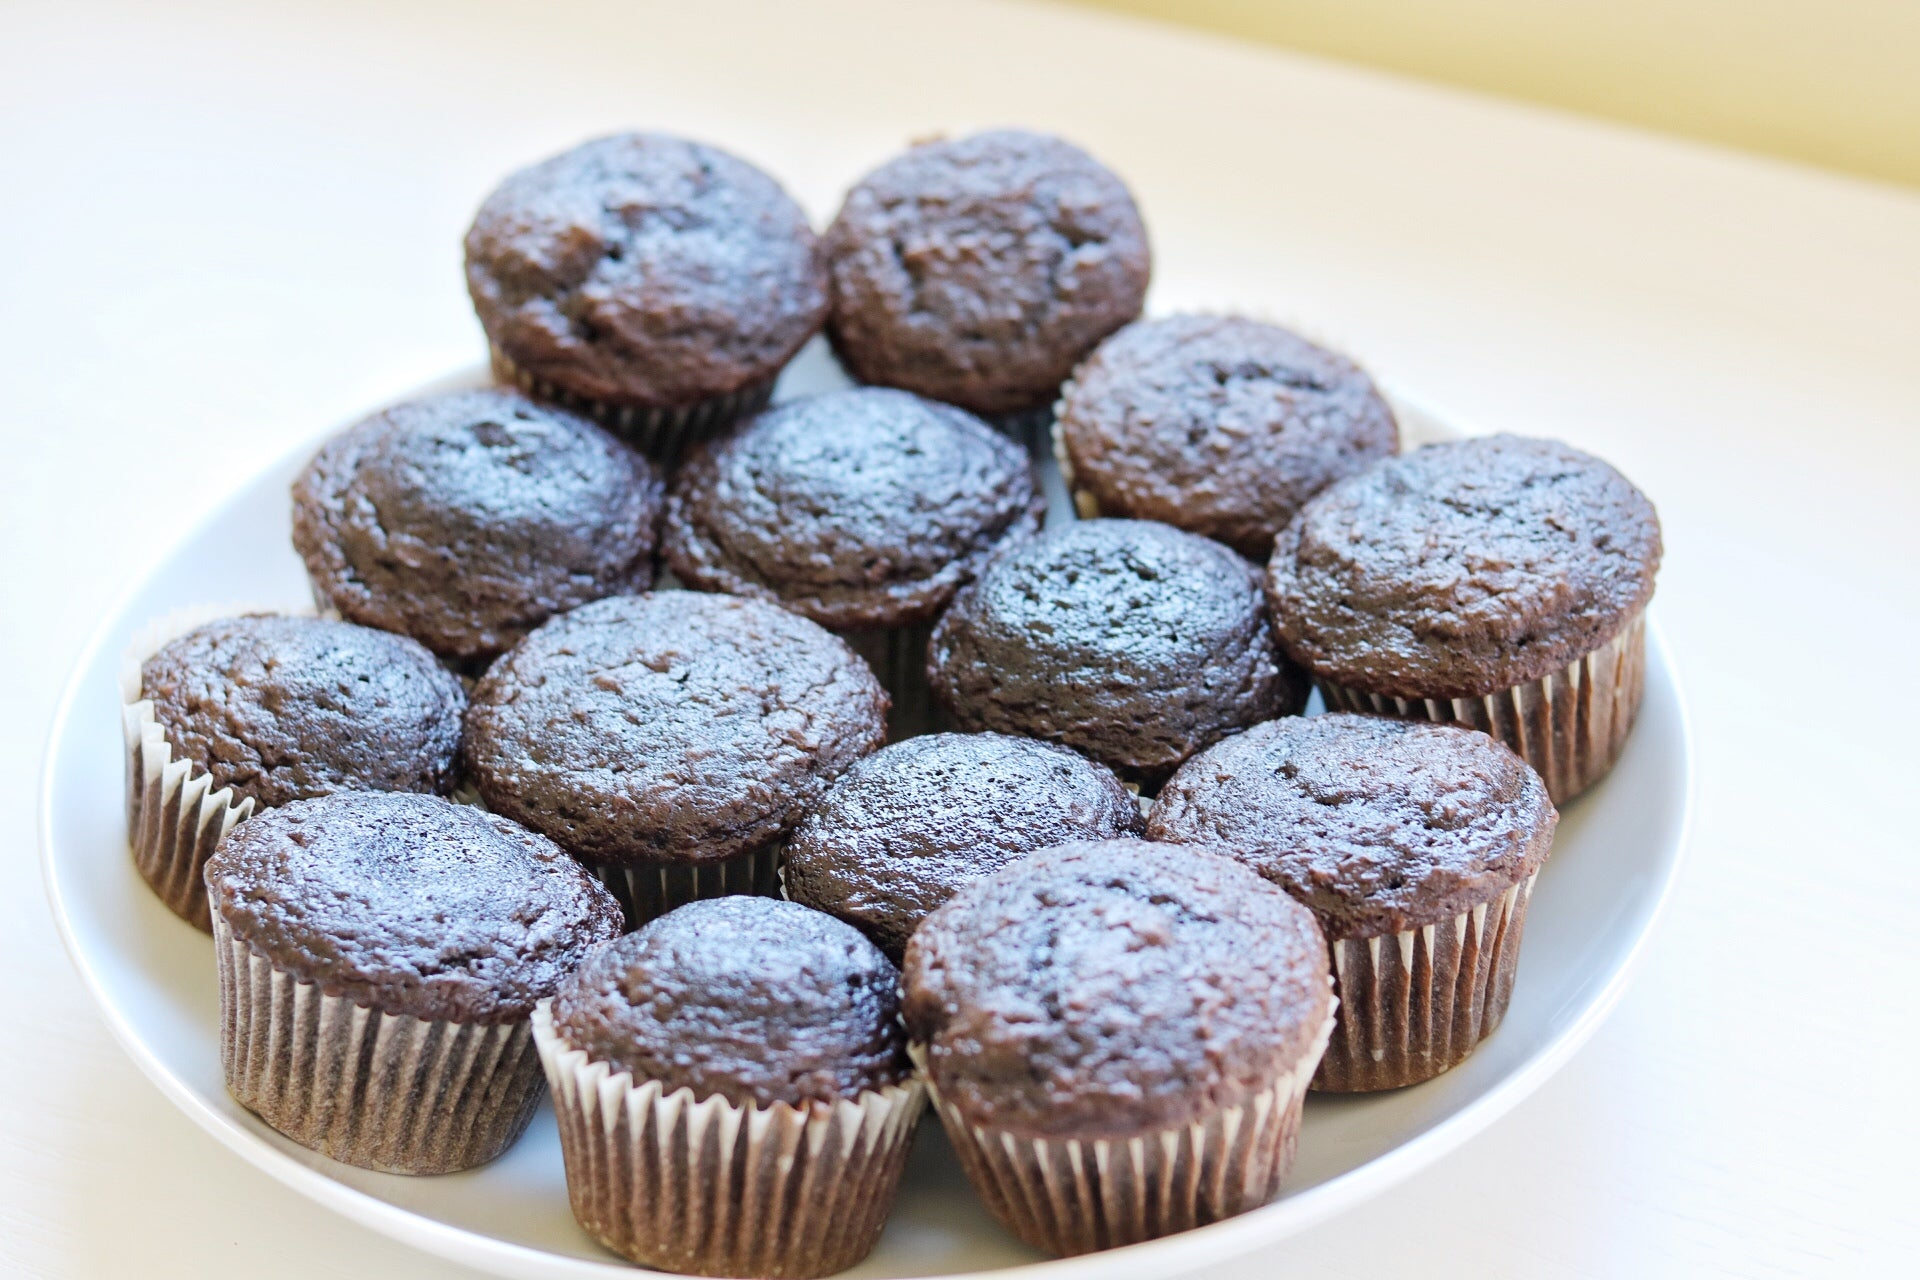 plate of unfrosted baked chocolate cupcakes